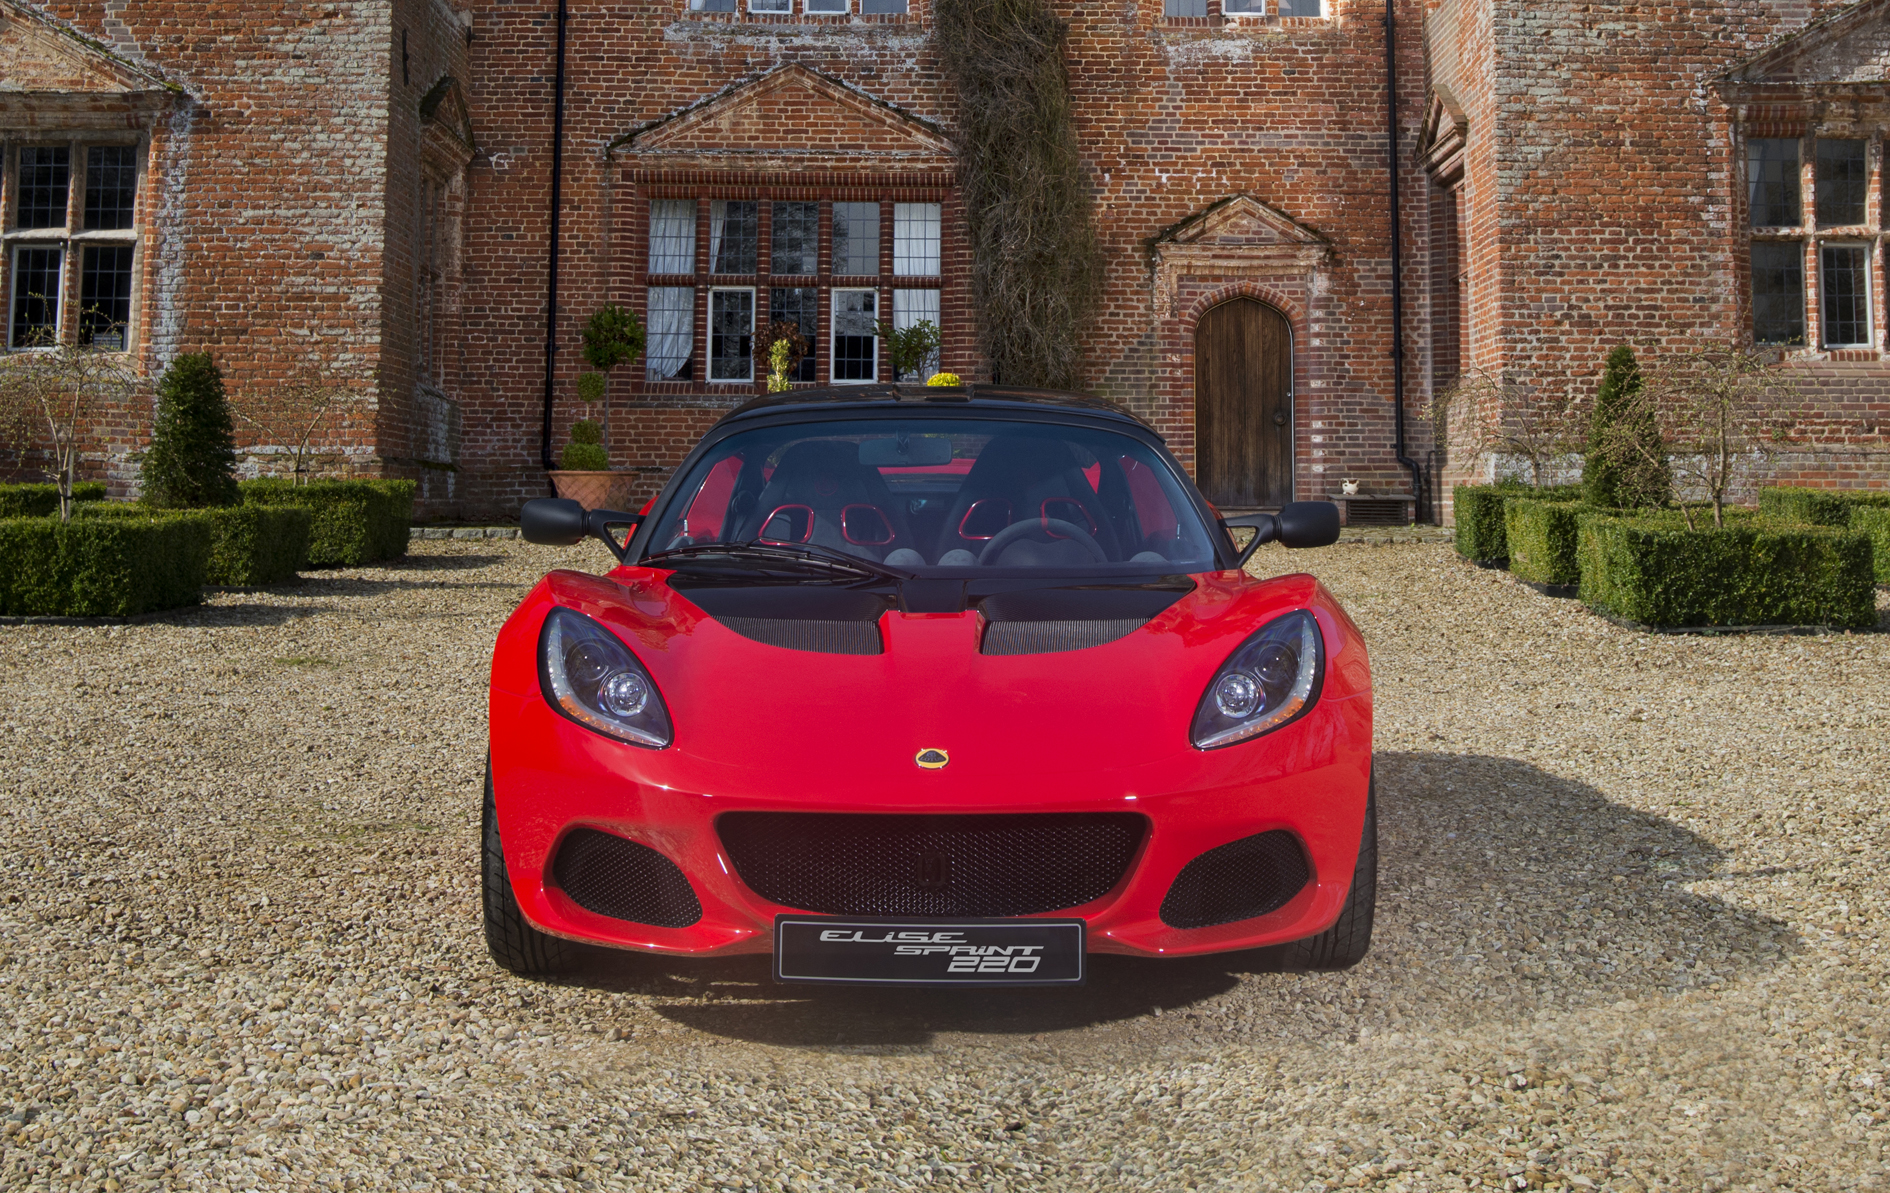 Integrating a new front and rear aesthetic with Lotus' established design  language, this latest Elise also receives a wide range of cabin  enhancements ...